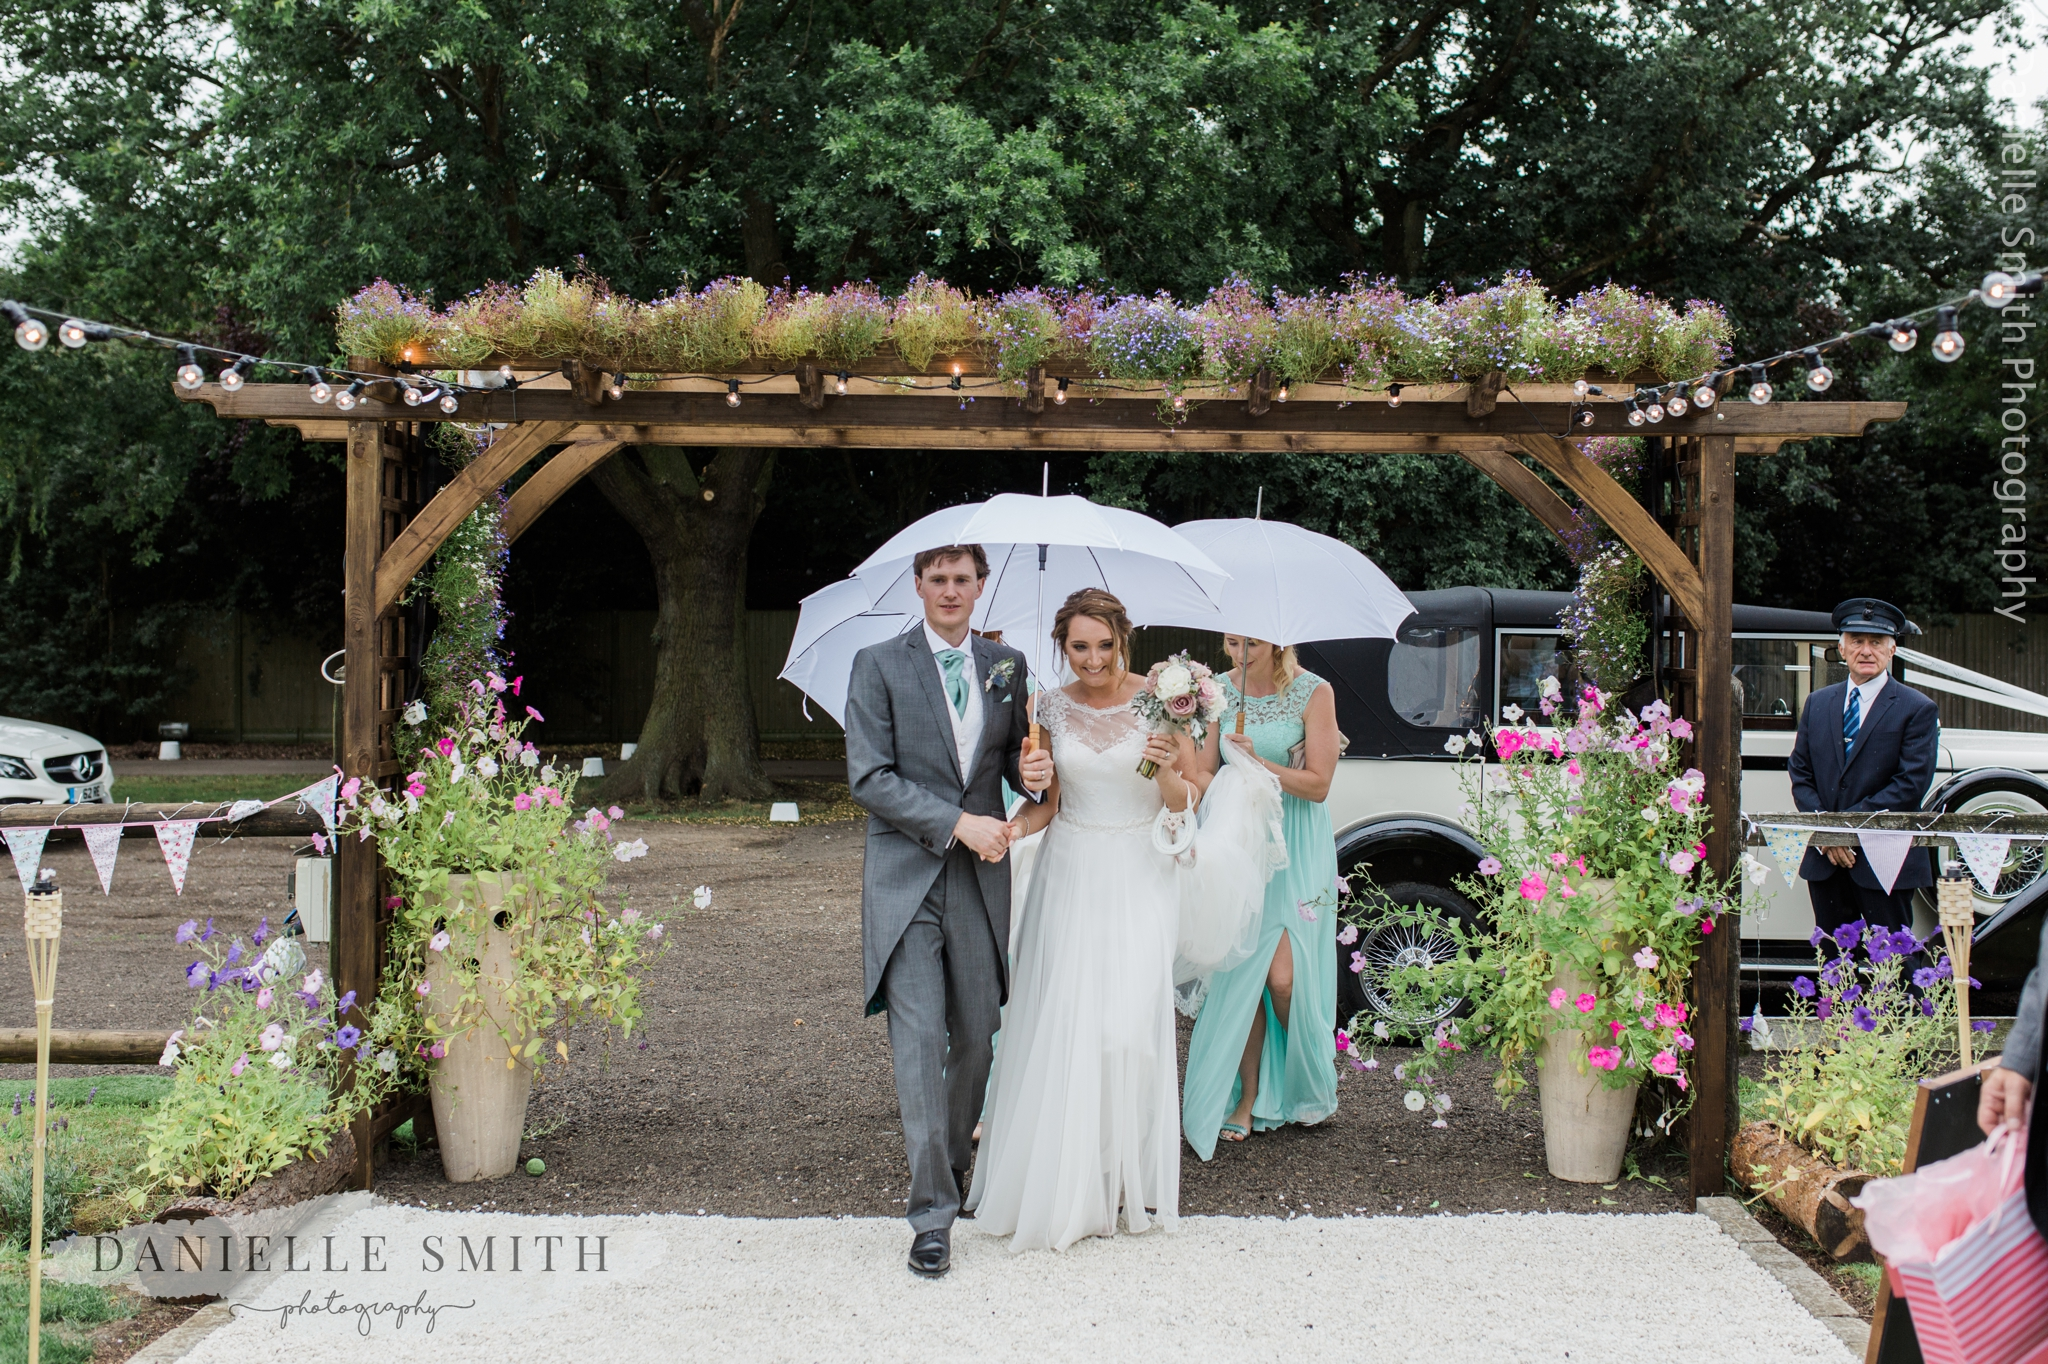 bride and groom arriving in rain with umbrellas - relaxed marquee wedding